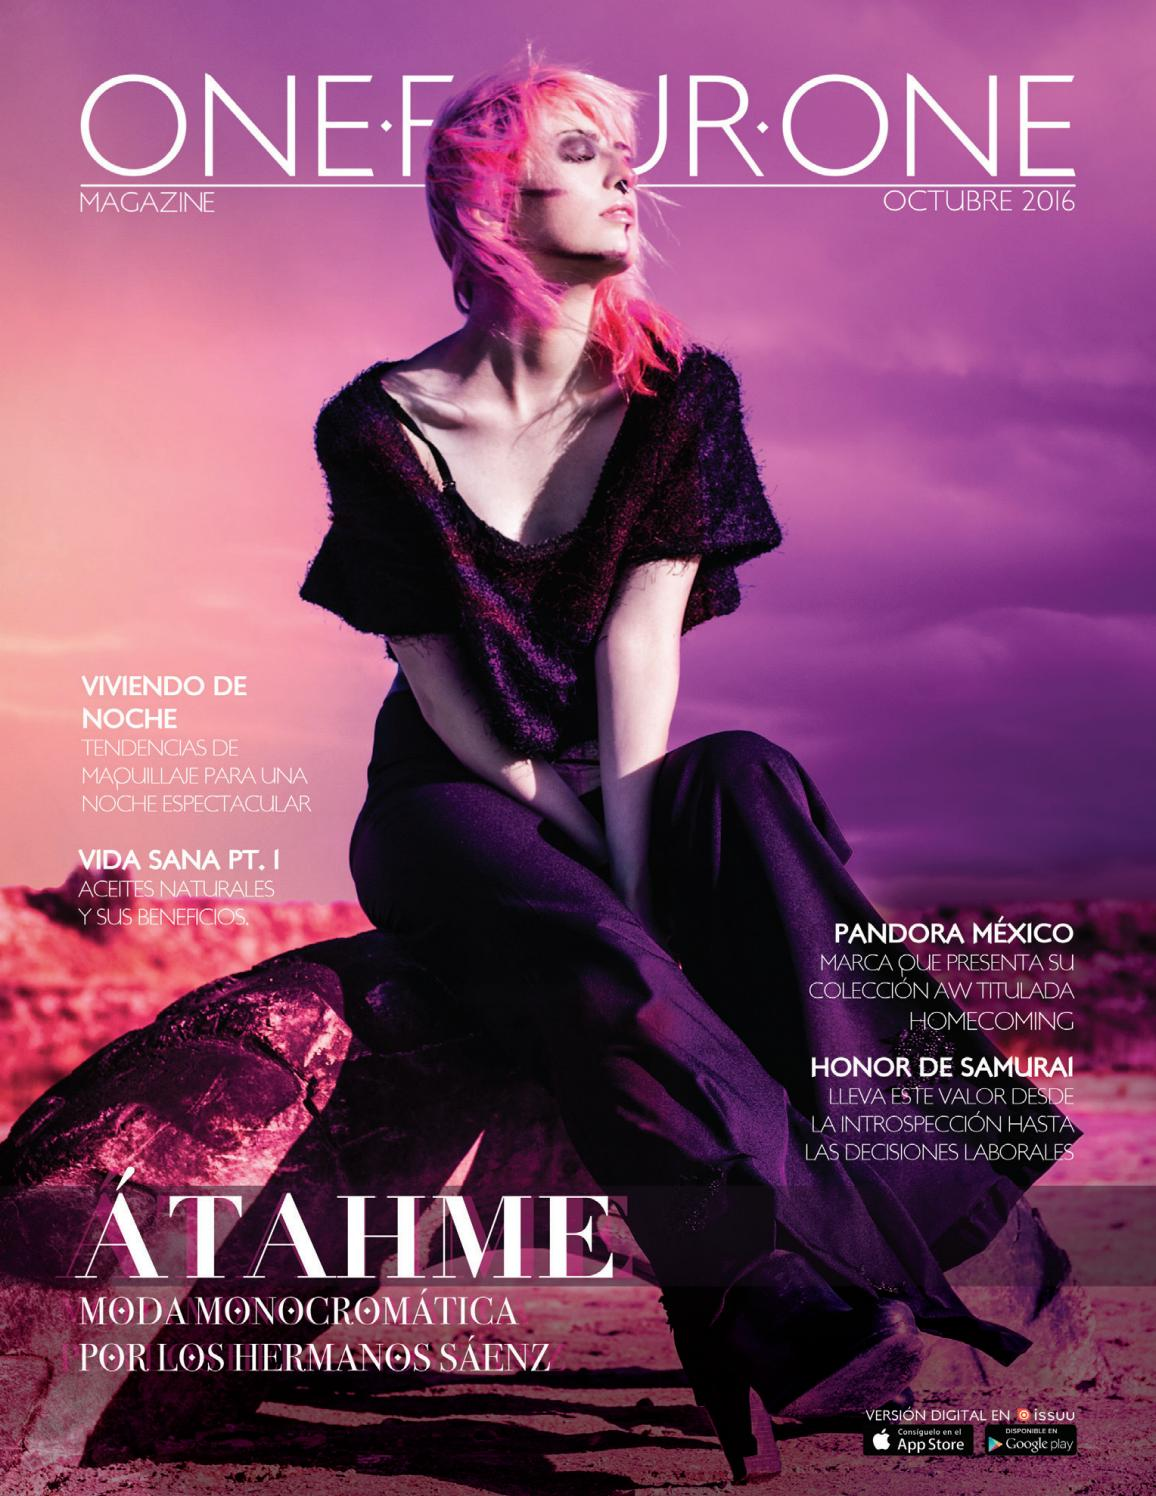 016 - Afterlife by One Four One Magazine - issuu